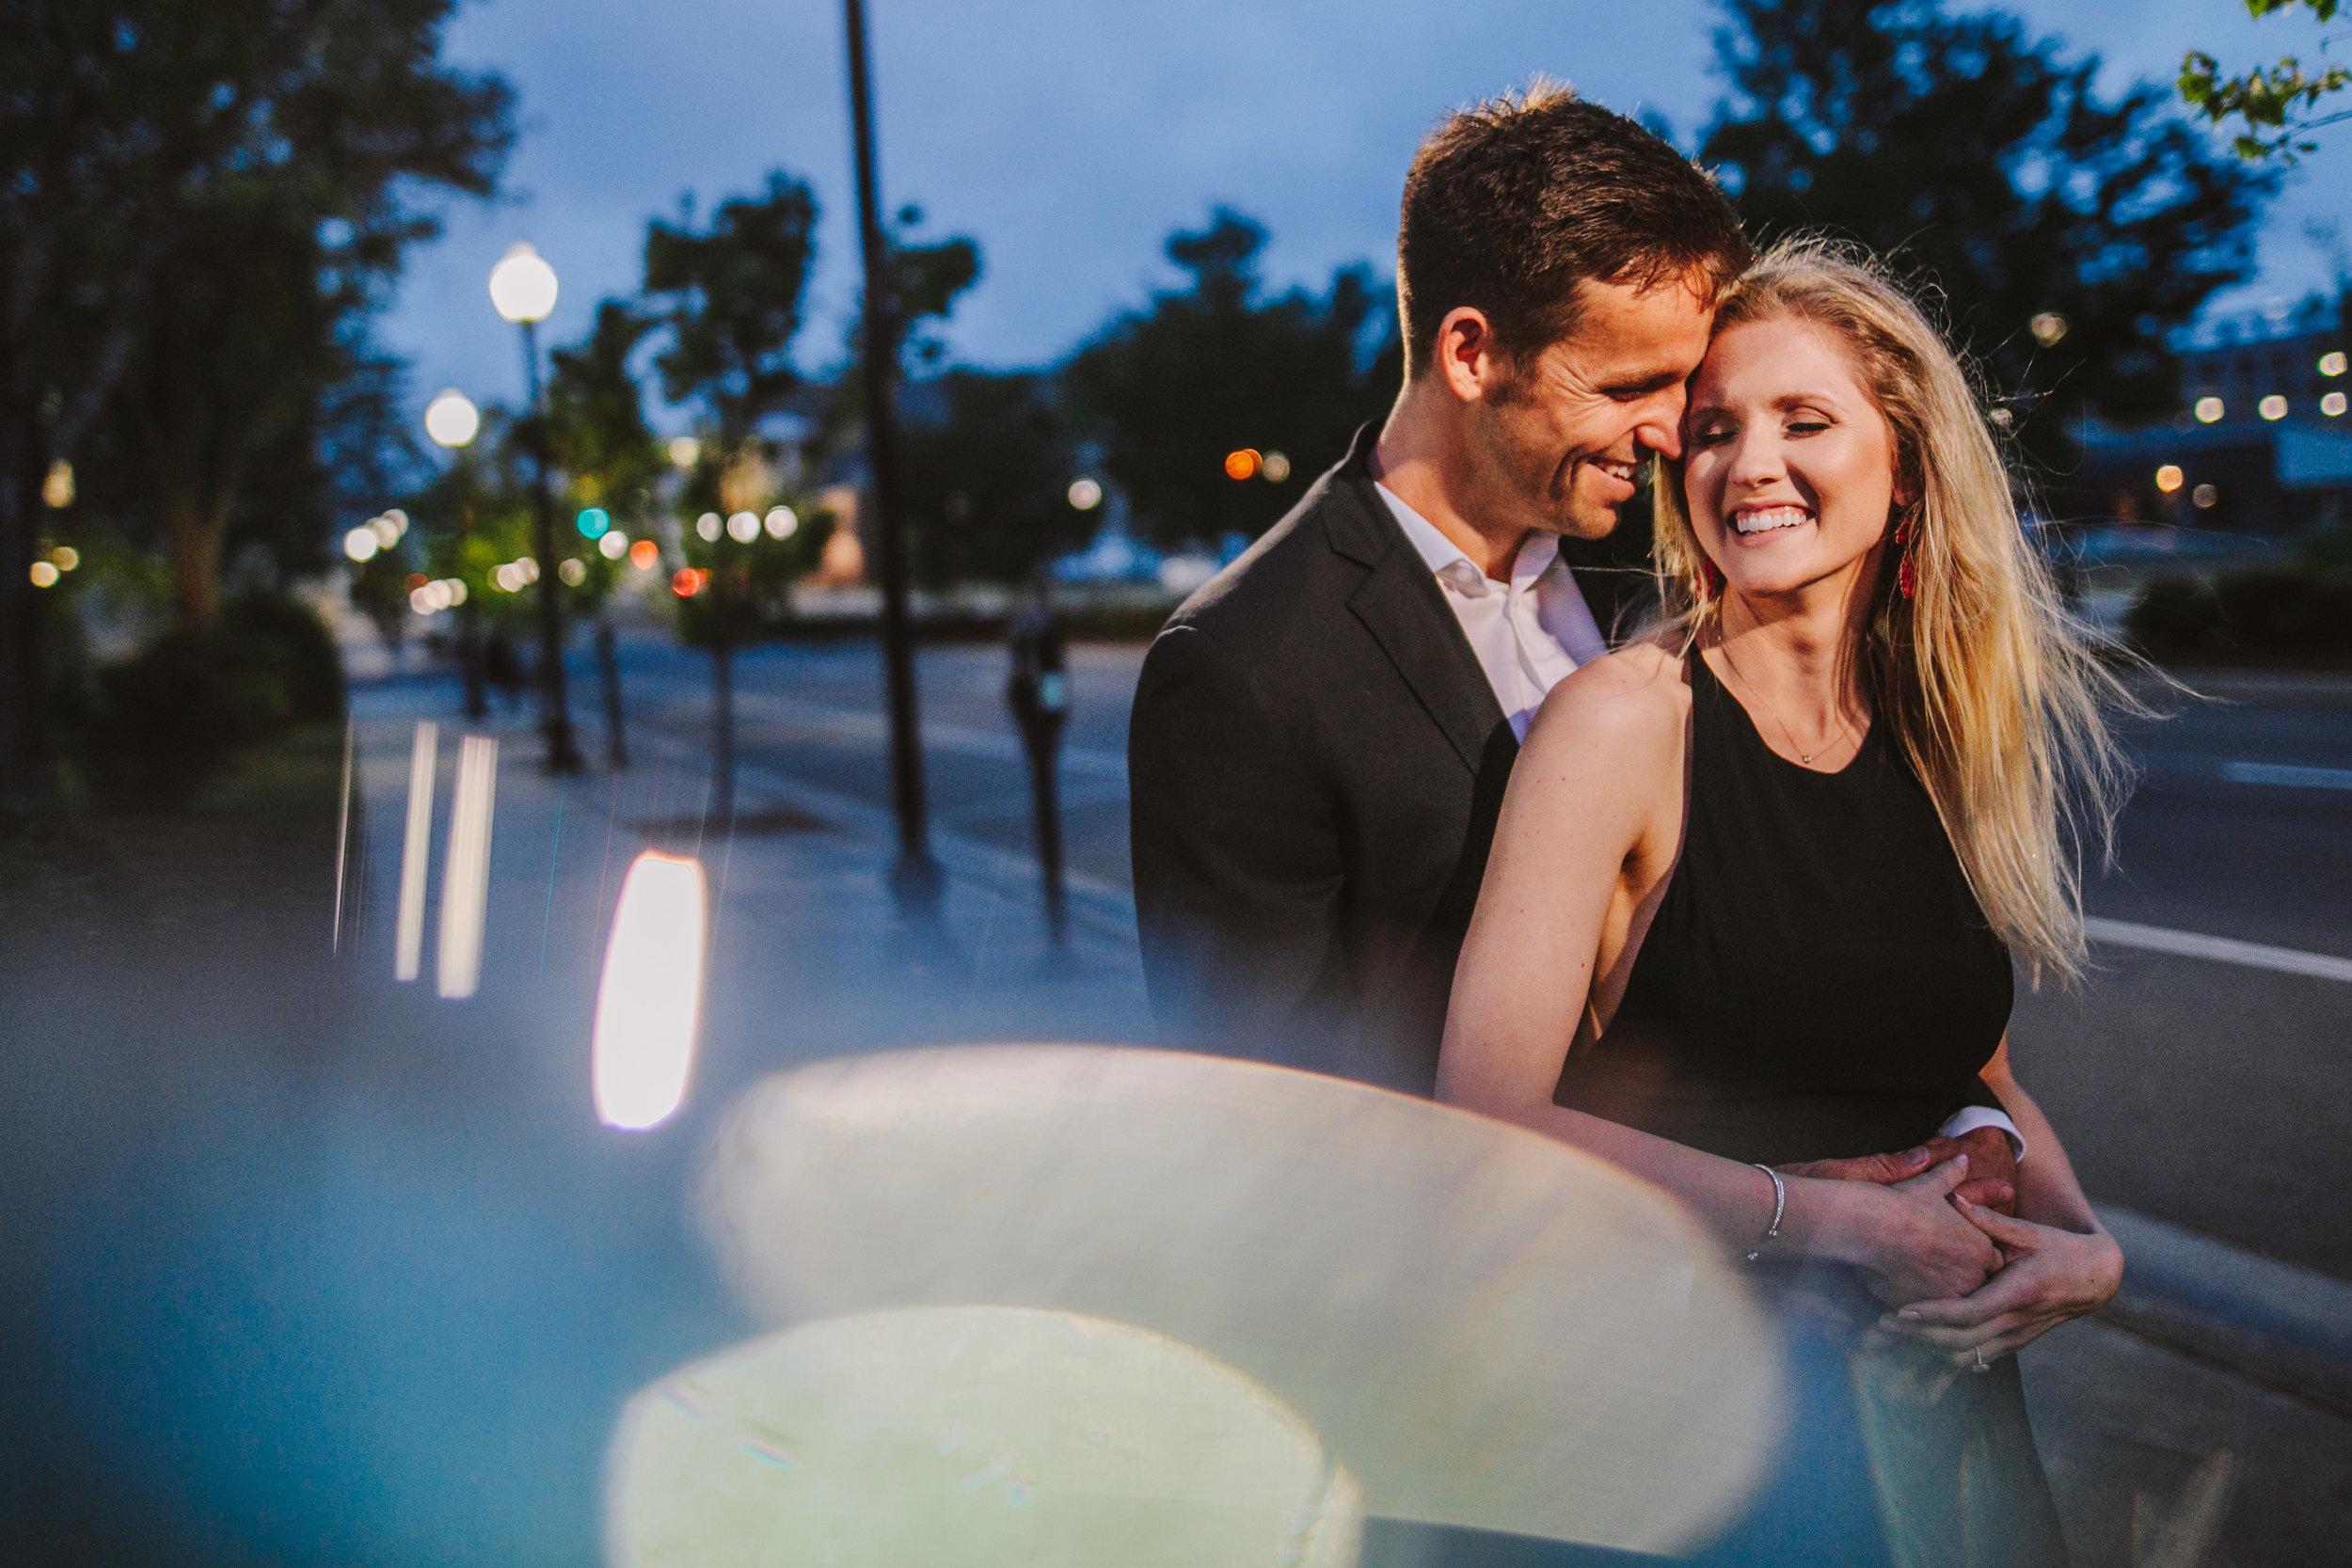 Convex lens photography for an engagement session in downtown wilmington nc